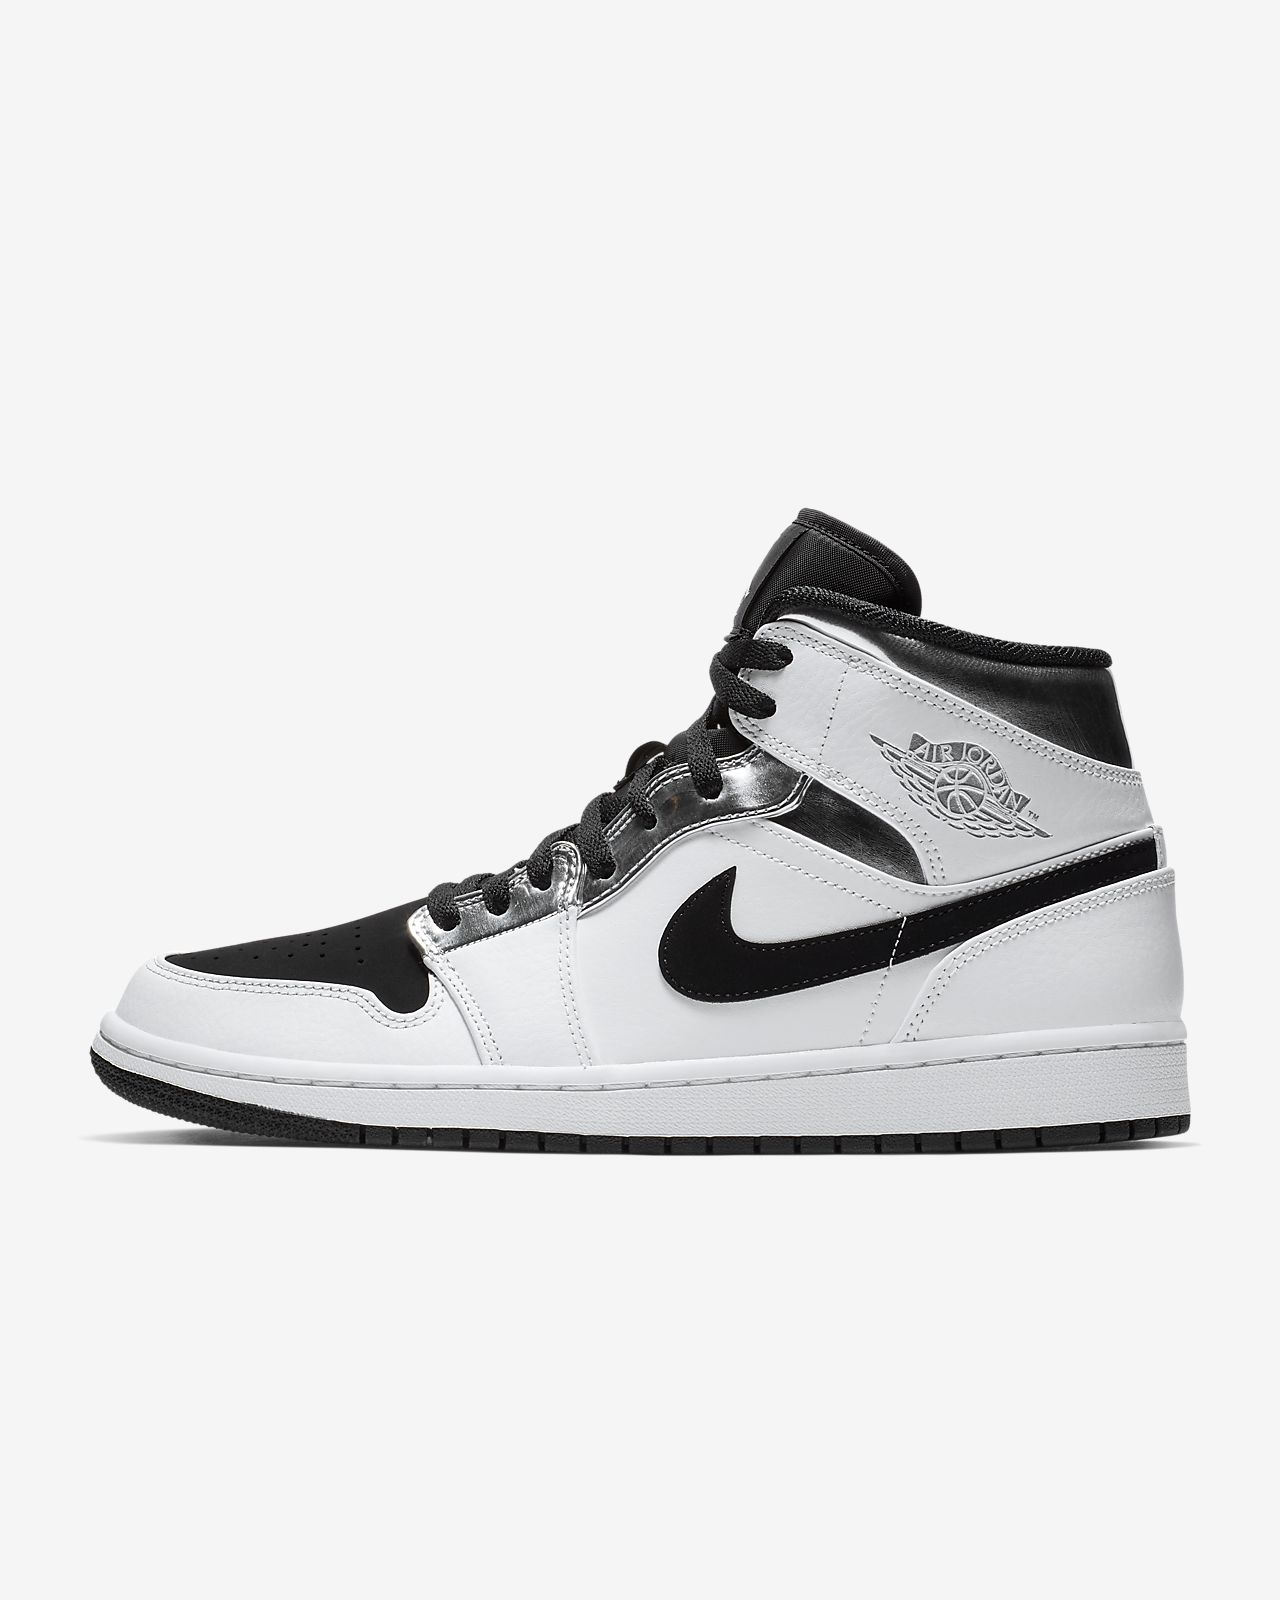 098a2e4b0ef Air Jordan 1 Mid Men s Shoe. Nike.com